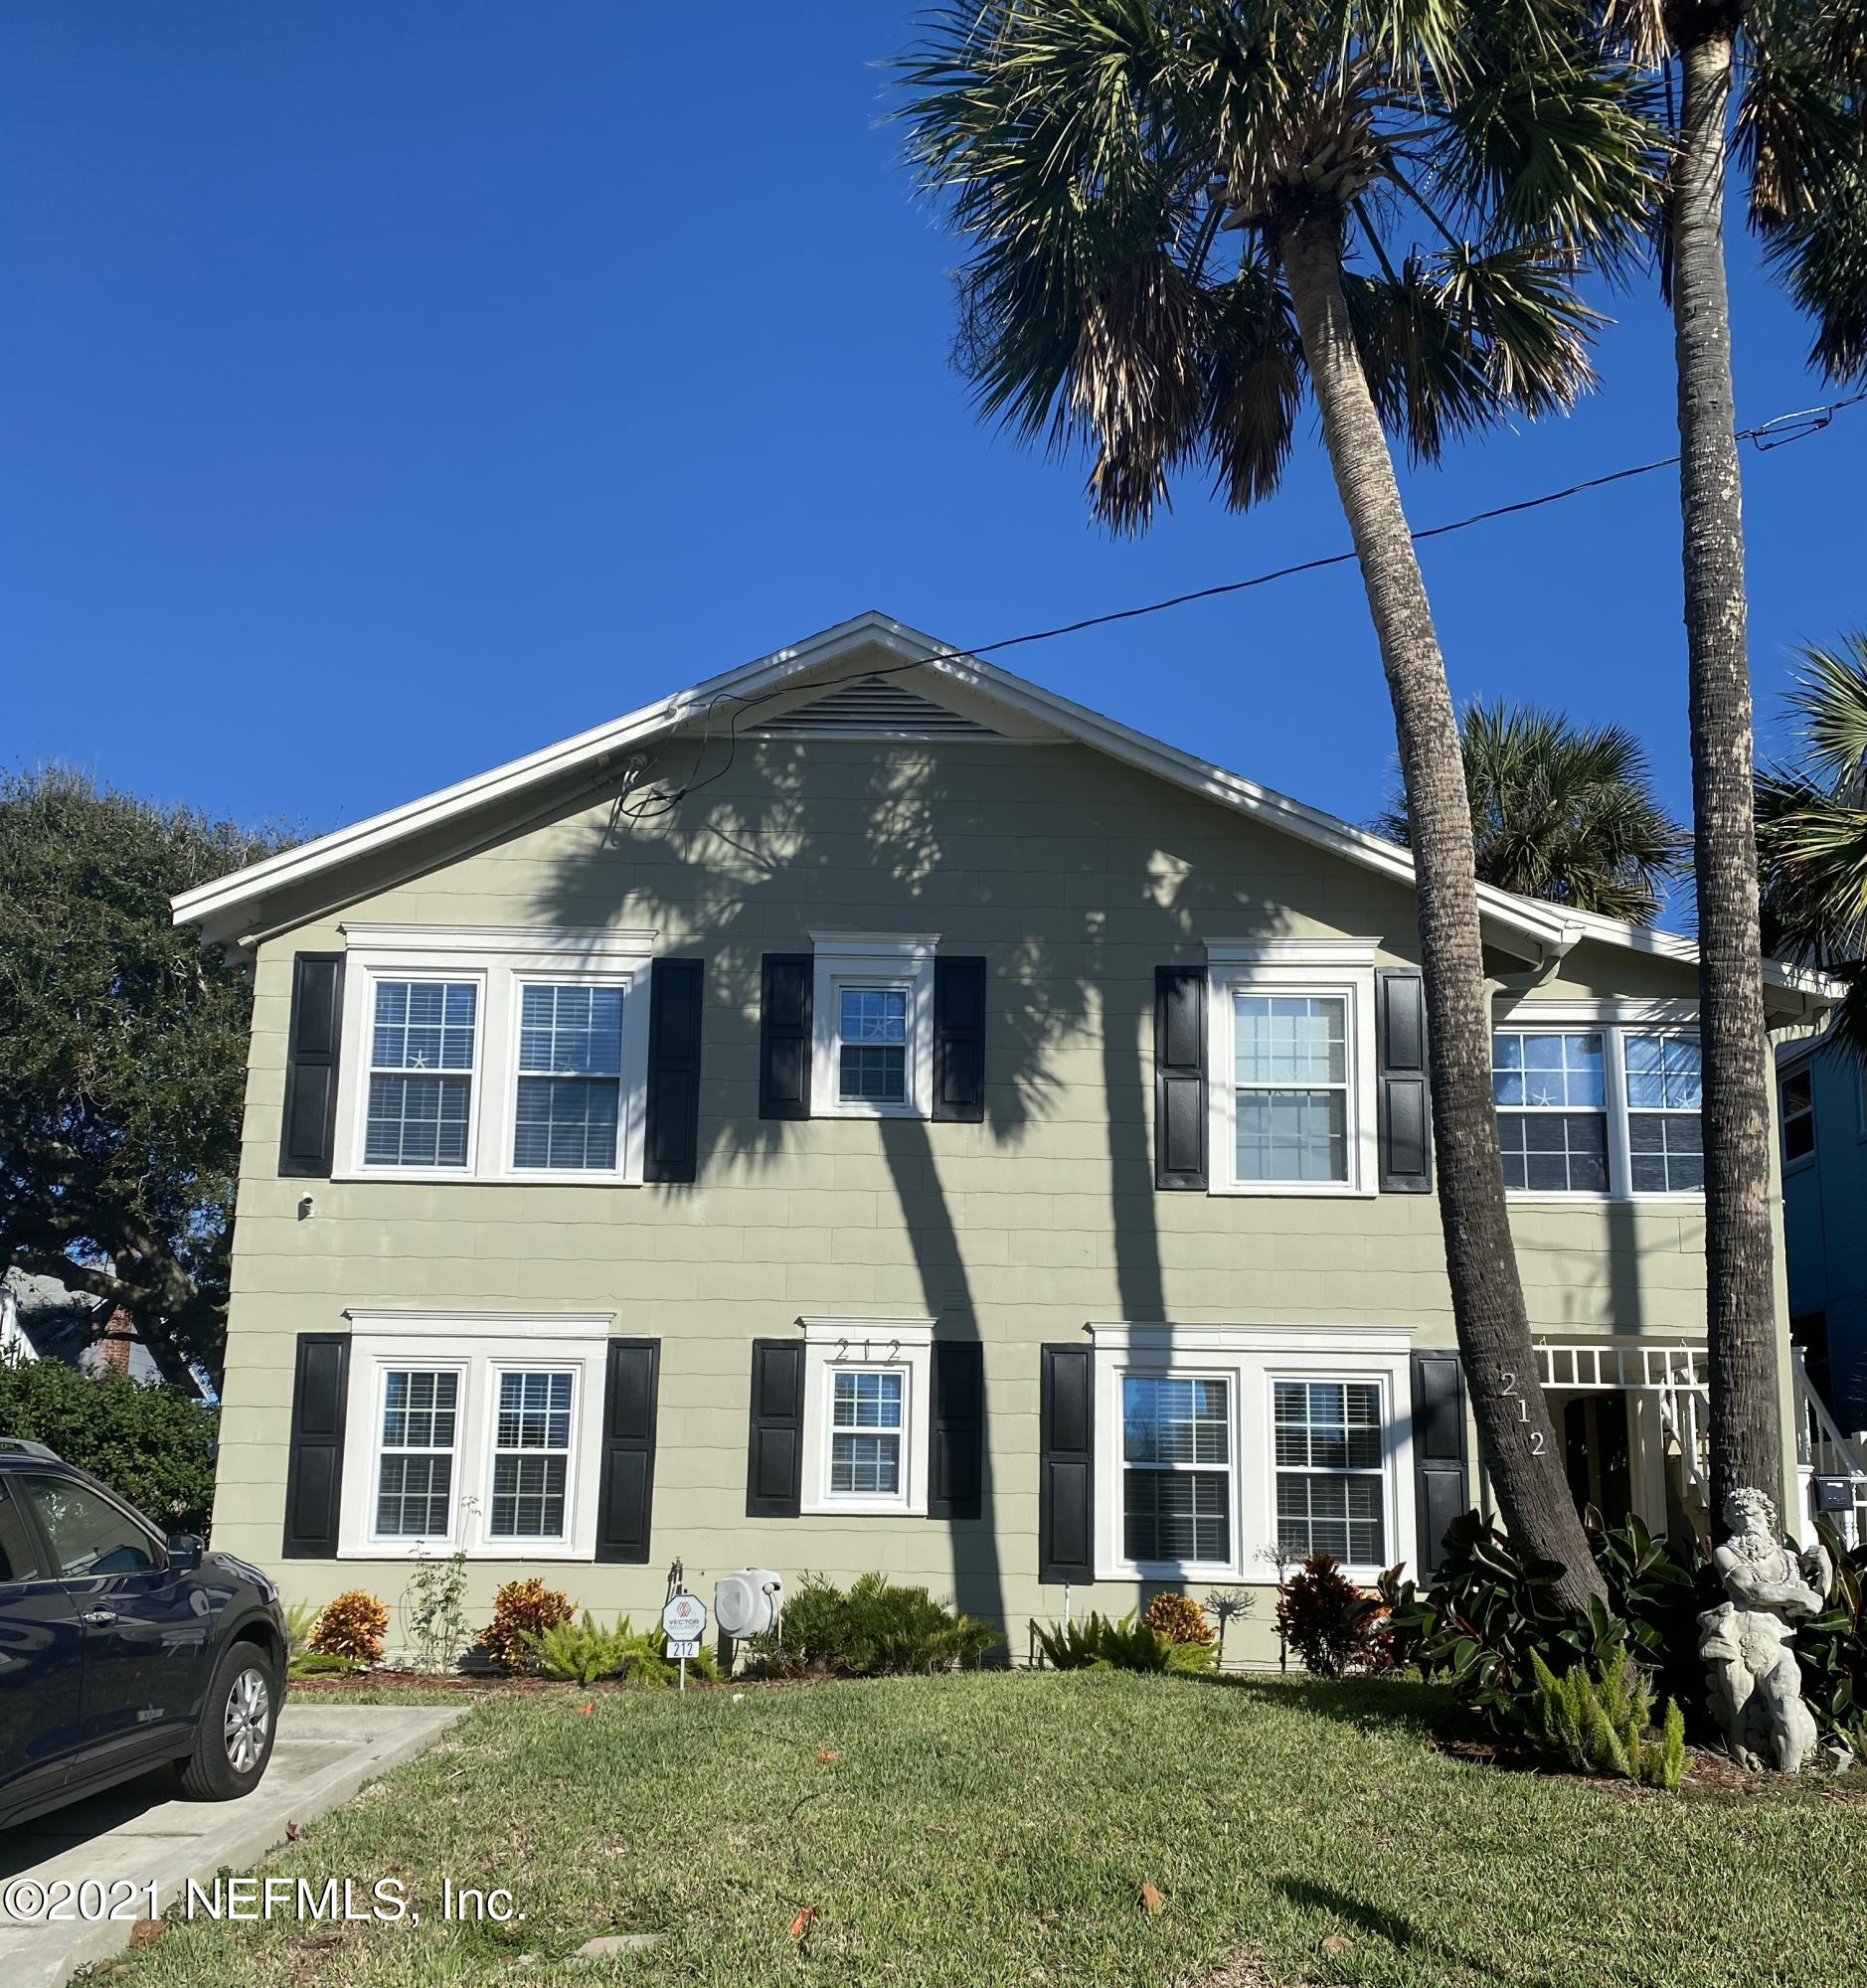 4 houses (and a church) from the Ocean!  Updated duplex with 3 car detached garage sitting on a large lot.  Hardwood floors in upper unit, new laminate floors in lower unit.  This duplex has 2/1 upstairs and downstairs.